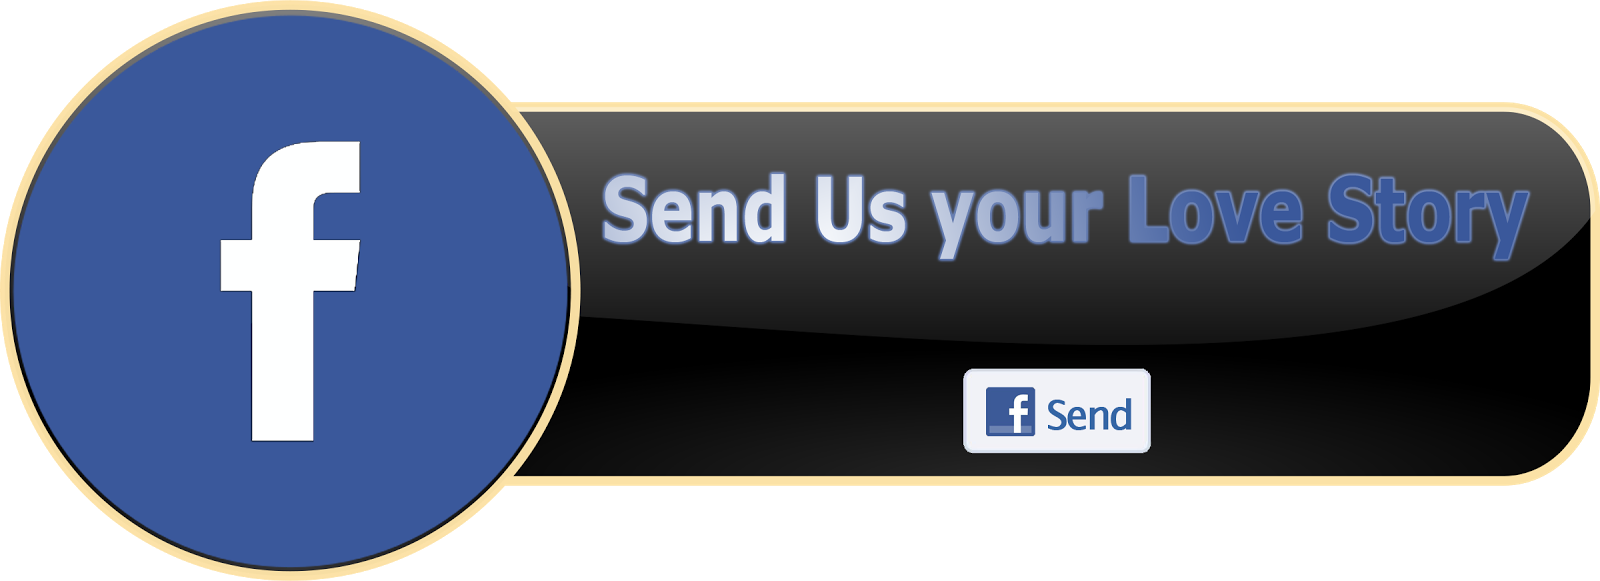 Send Us Now you Love Story By Facebook